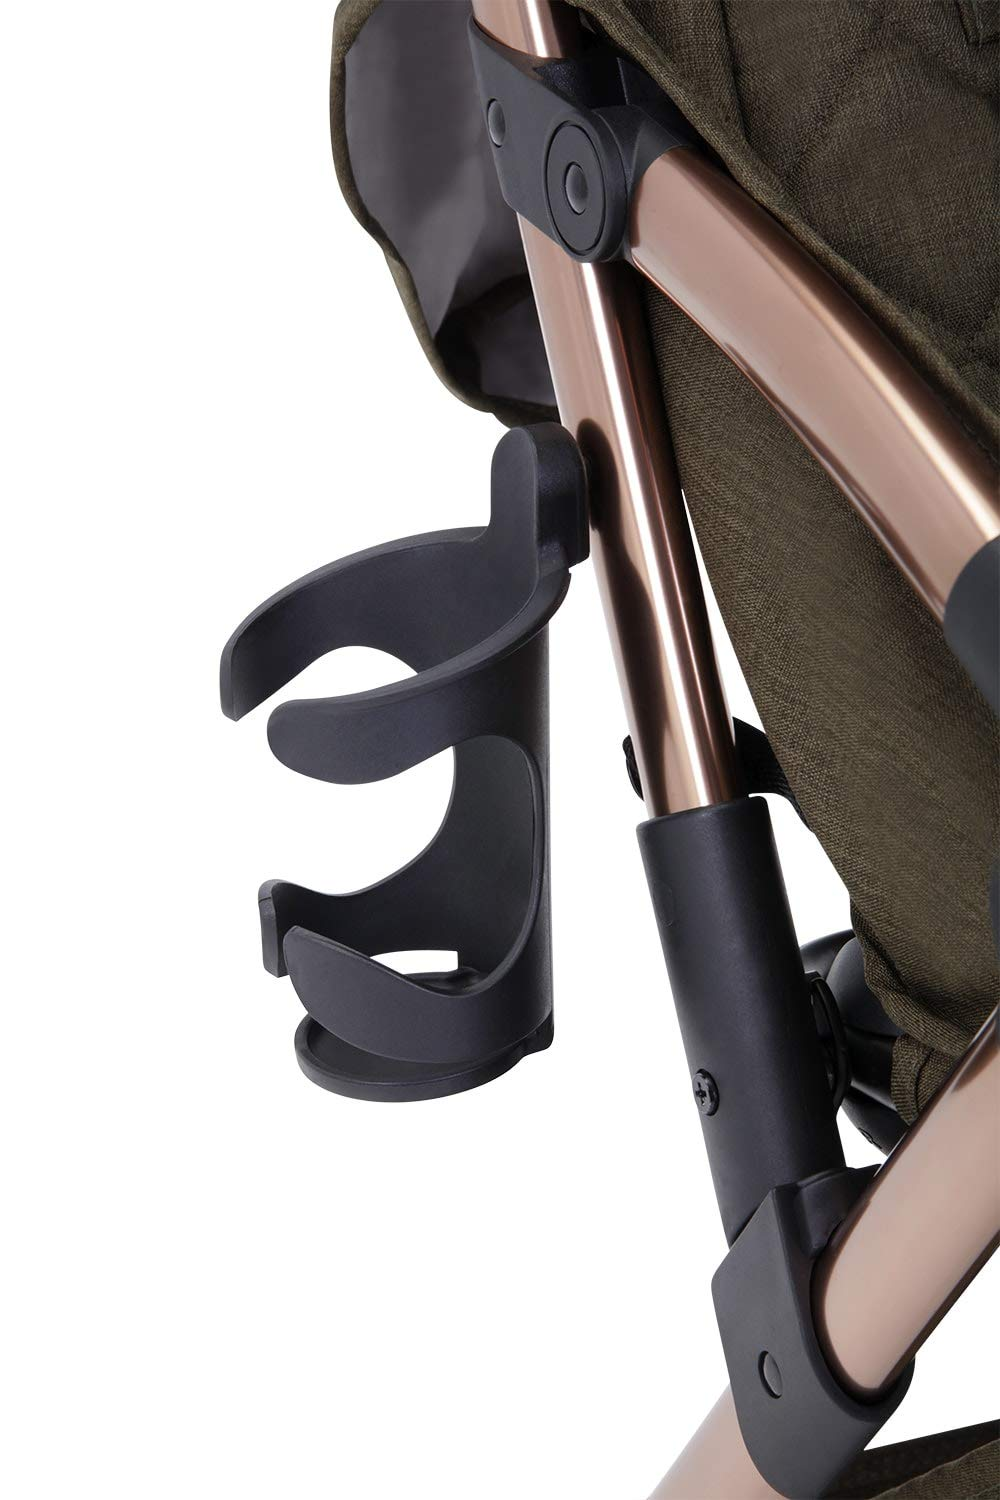 Ickle Bubba Globe Prime Baby Stroller | Lightweight and Portable Stroller Pushchair | Folds Slim for Ultra Compact Storage | UPF 50+ Extendable Hood and Baby Carriage Accessories | Khaki/Rose Gold Ickle Bubba ONE-HANDED 3 POSITION SEAT RECLINE: Luxury baby stroller suitable from birth to 15kg-approx. 3 years old; features luxury soft quilted seat liner, footmuff, cupholder, buggy organiser, storage bag and rain cover UPF 50+ RATED ADJUSTABLE HOOD: Includes a peekaboo window to keep an eye on the little one; extendable hood-UPF rated-to protect against the sun's harmful rays and inclement weather ULTRA COMPACT AND LIGHTWEIGHT: Easy to transport, aluminum frame is lightweight and portable-weighs only 6.4kg; folds compact for storage in small places-fits in aeroplane overhead; carry strap and leather shoulder pad included 6